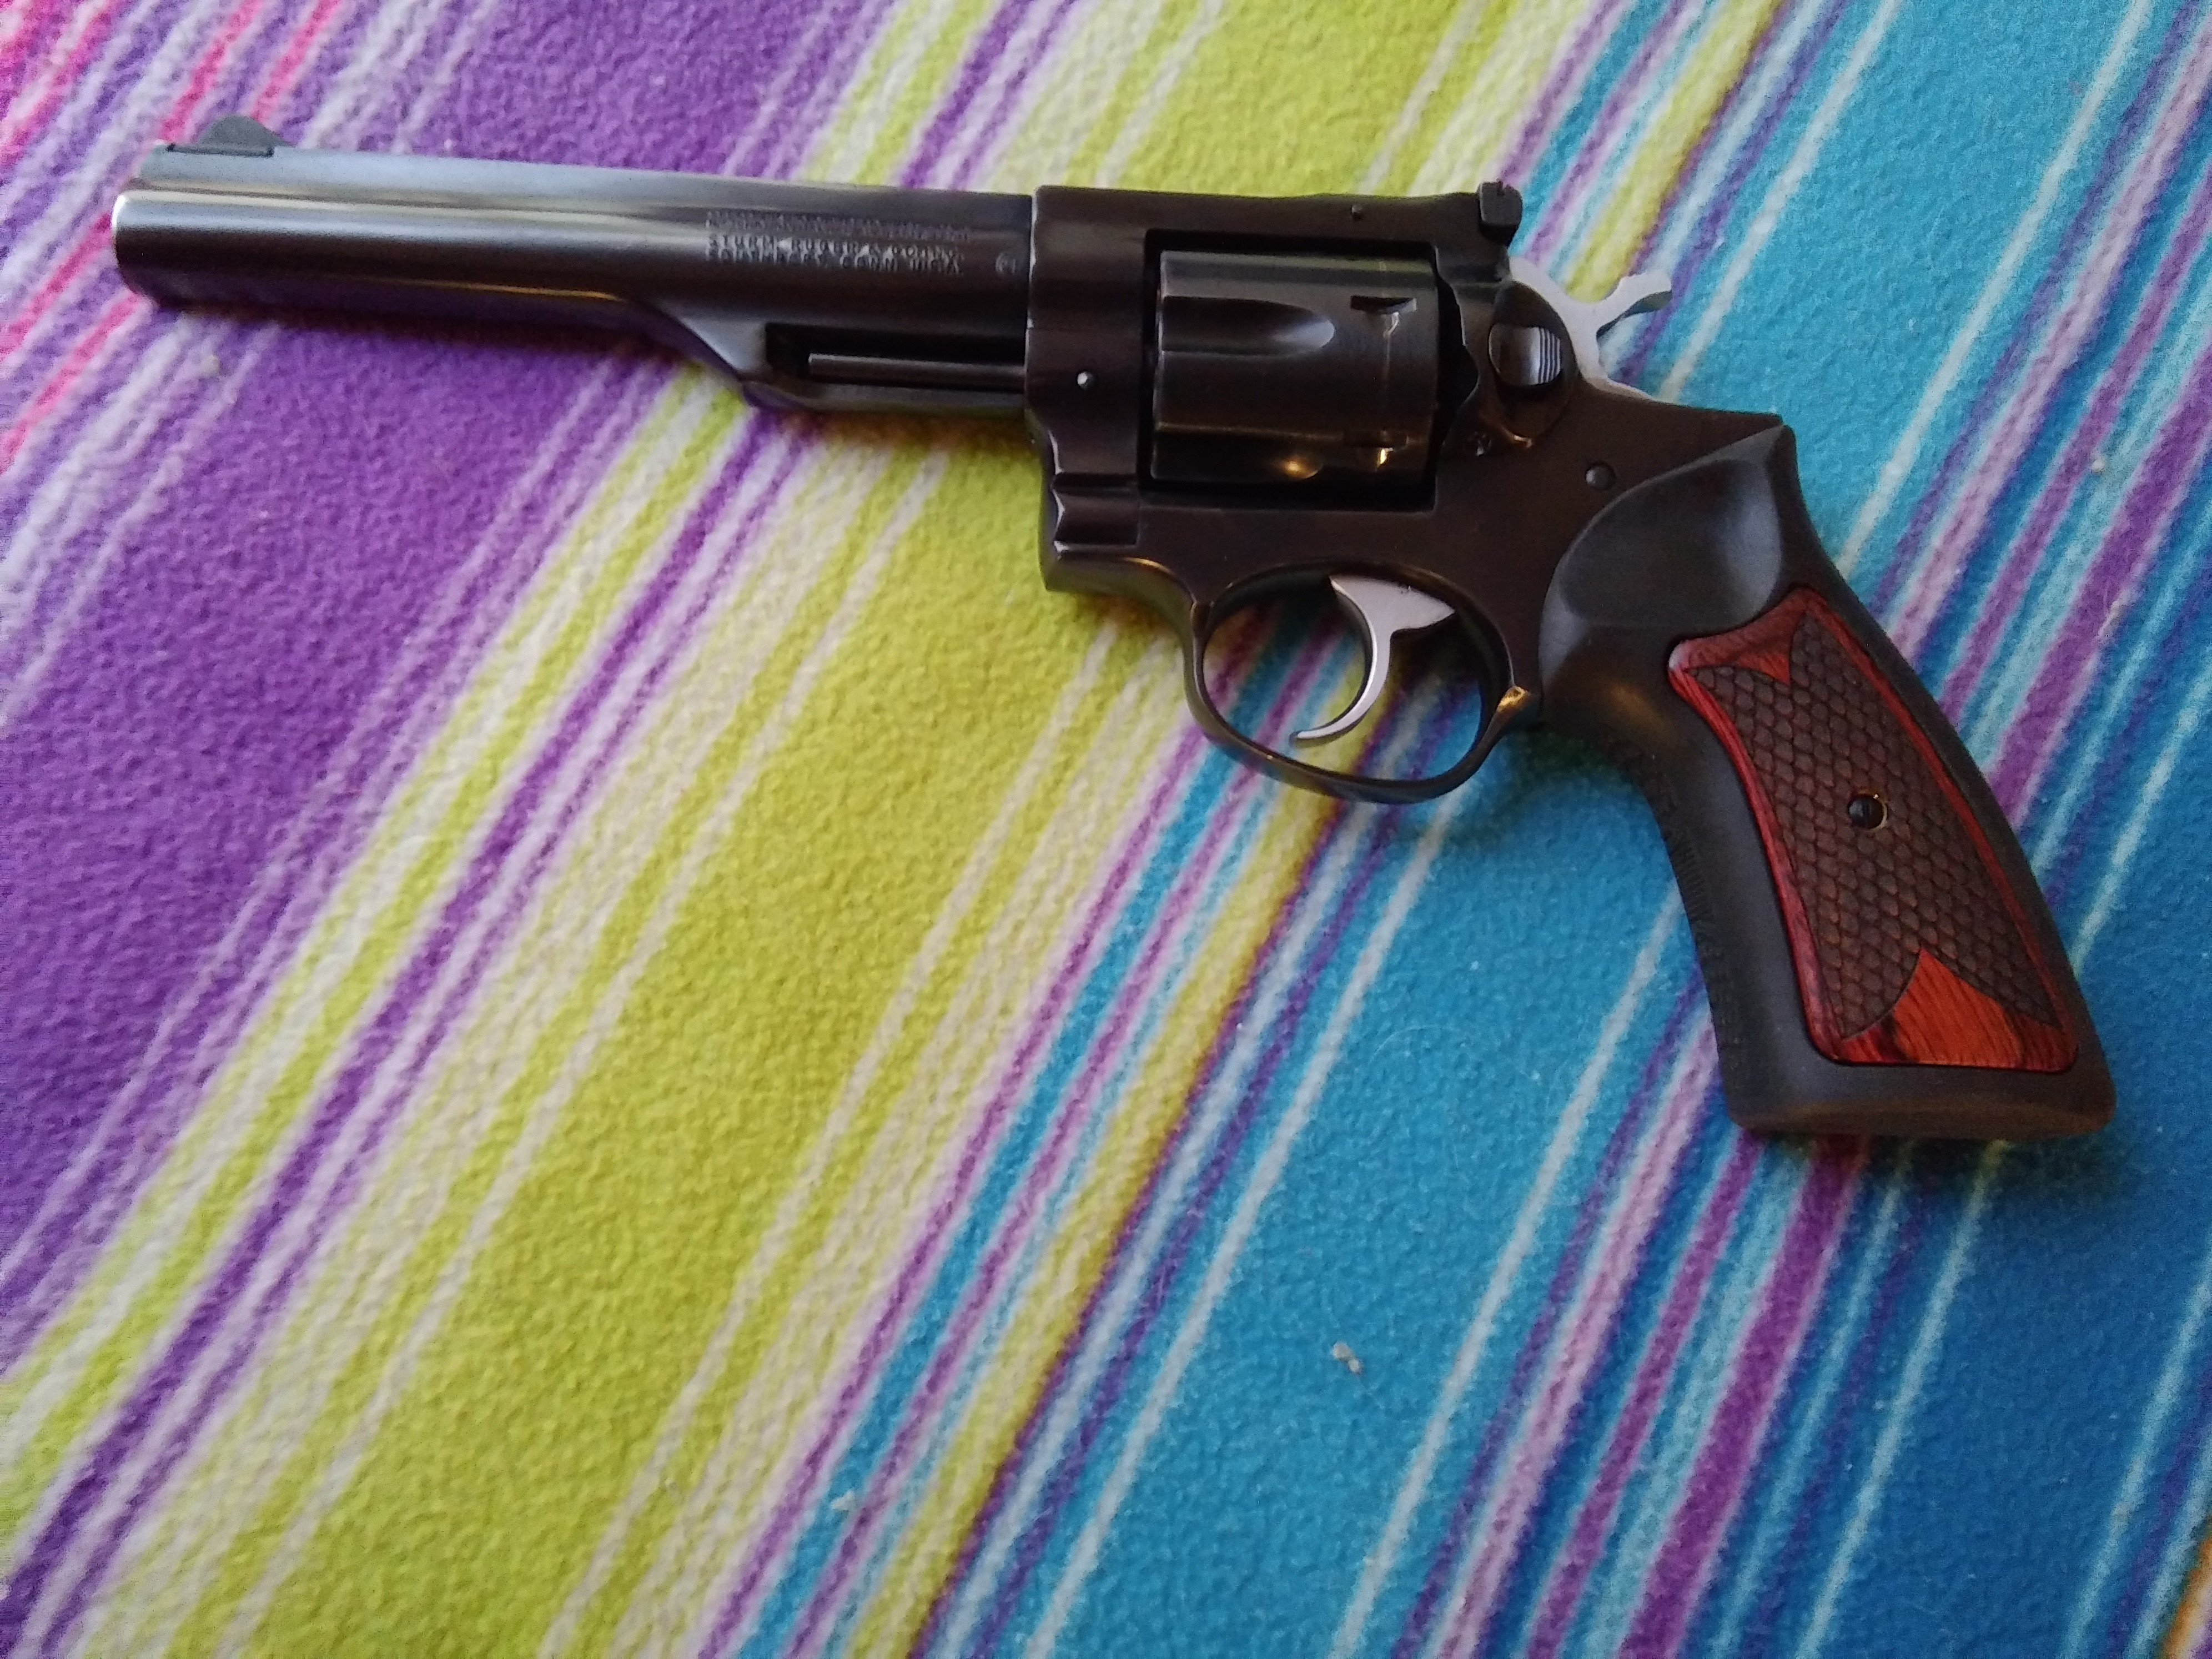 Ruger - GP100 - Altamont Grips | Gun and Game - The